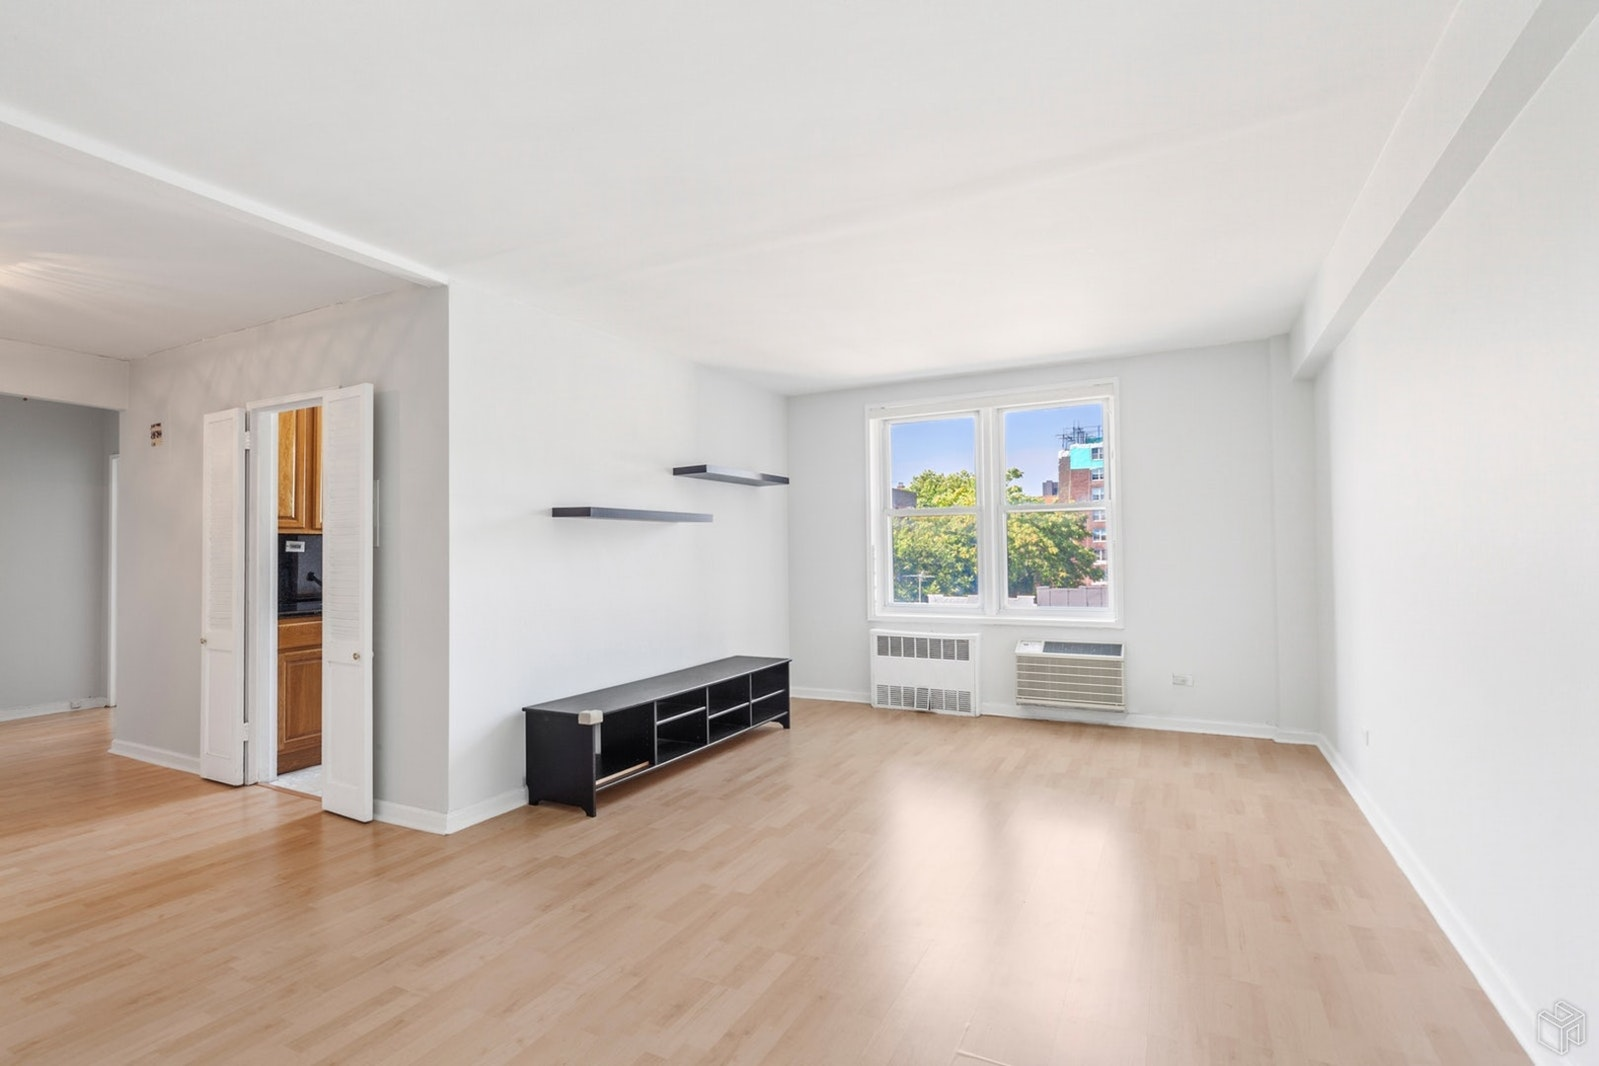 131 74th Street Apt3a, Bay Ridge, Brooklyn, NY, 11209, $355,000, Property For Sale, Halstead Real Estate, Photo 3